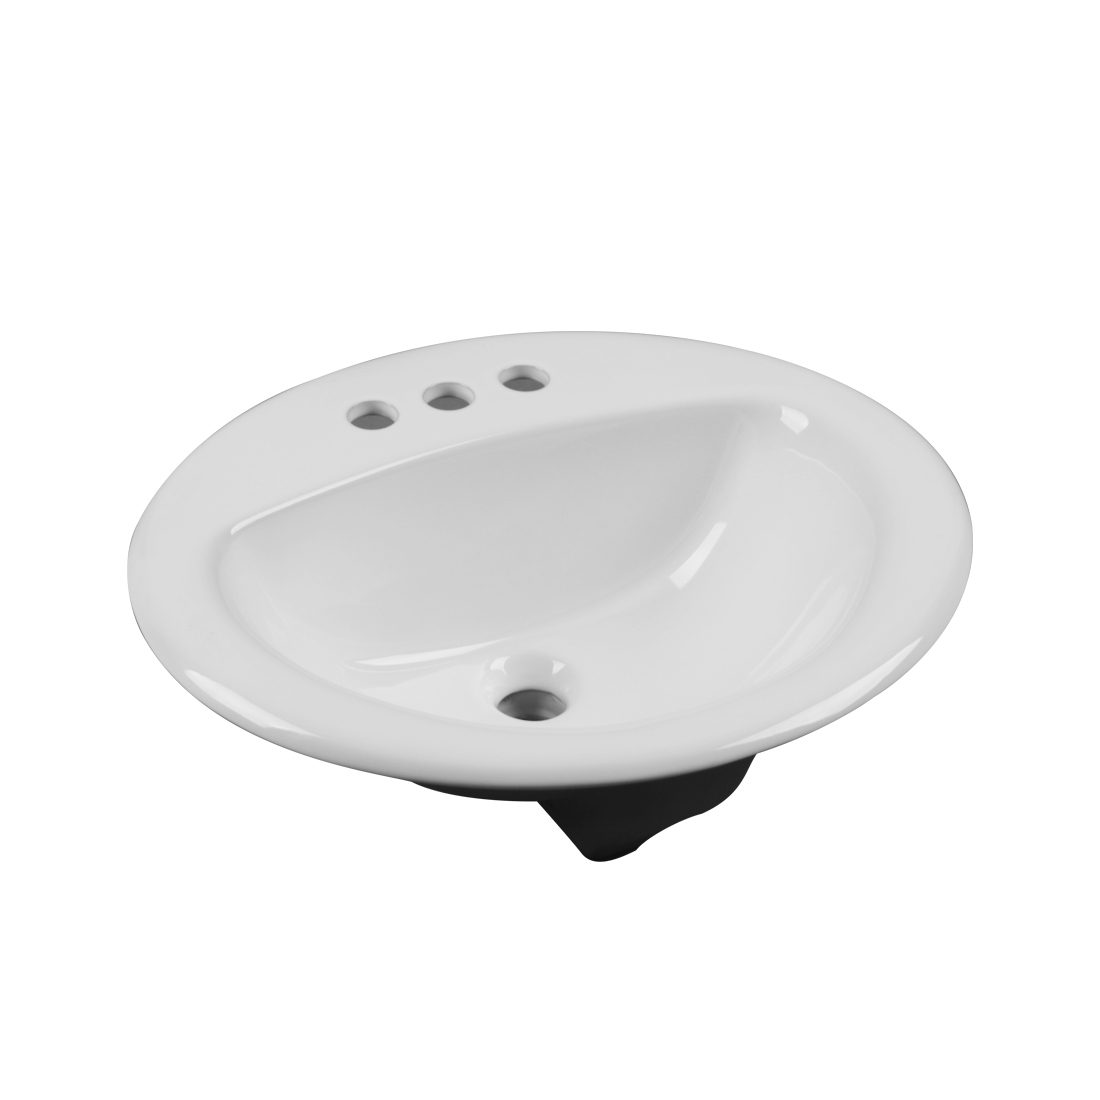 New York Lavatory 3Hole 4inch White Front View